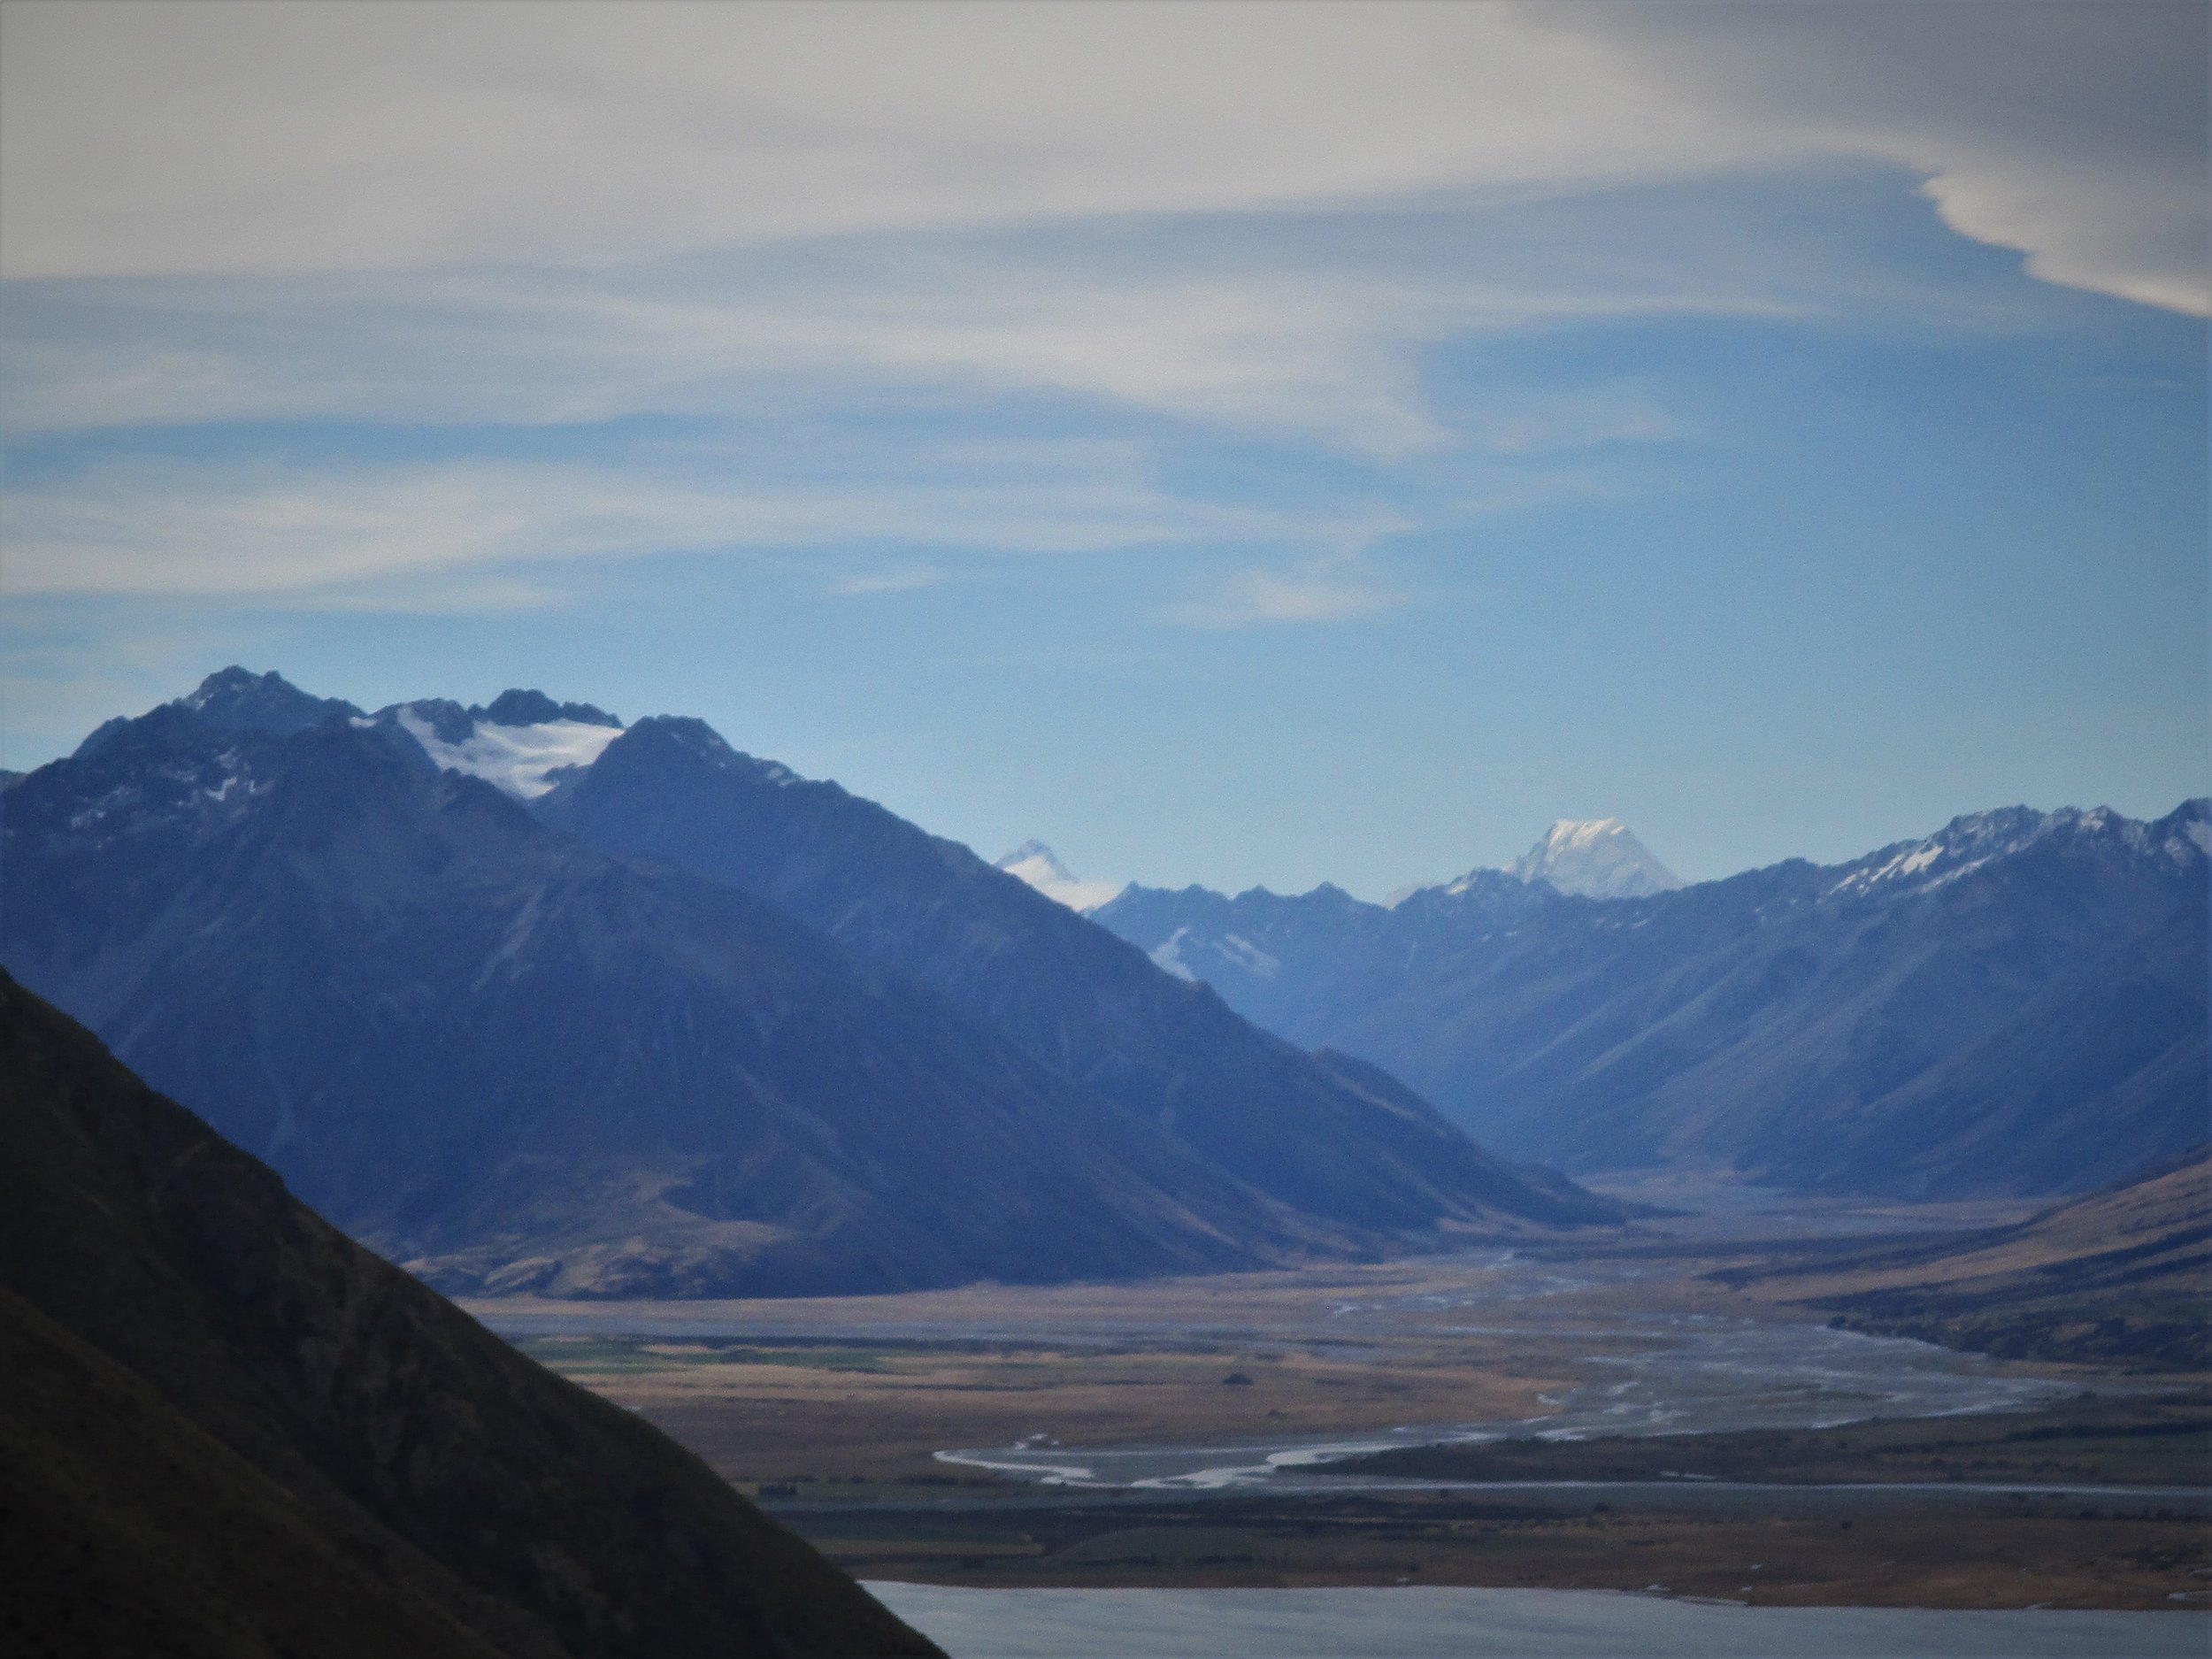 The View from the skifield road , with the moutais Sefton and Aoraki /Cook as backdrops.